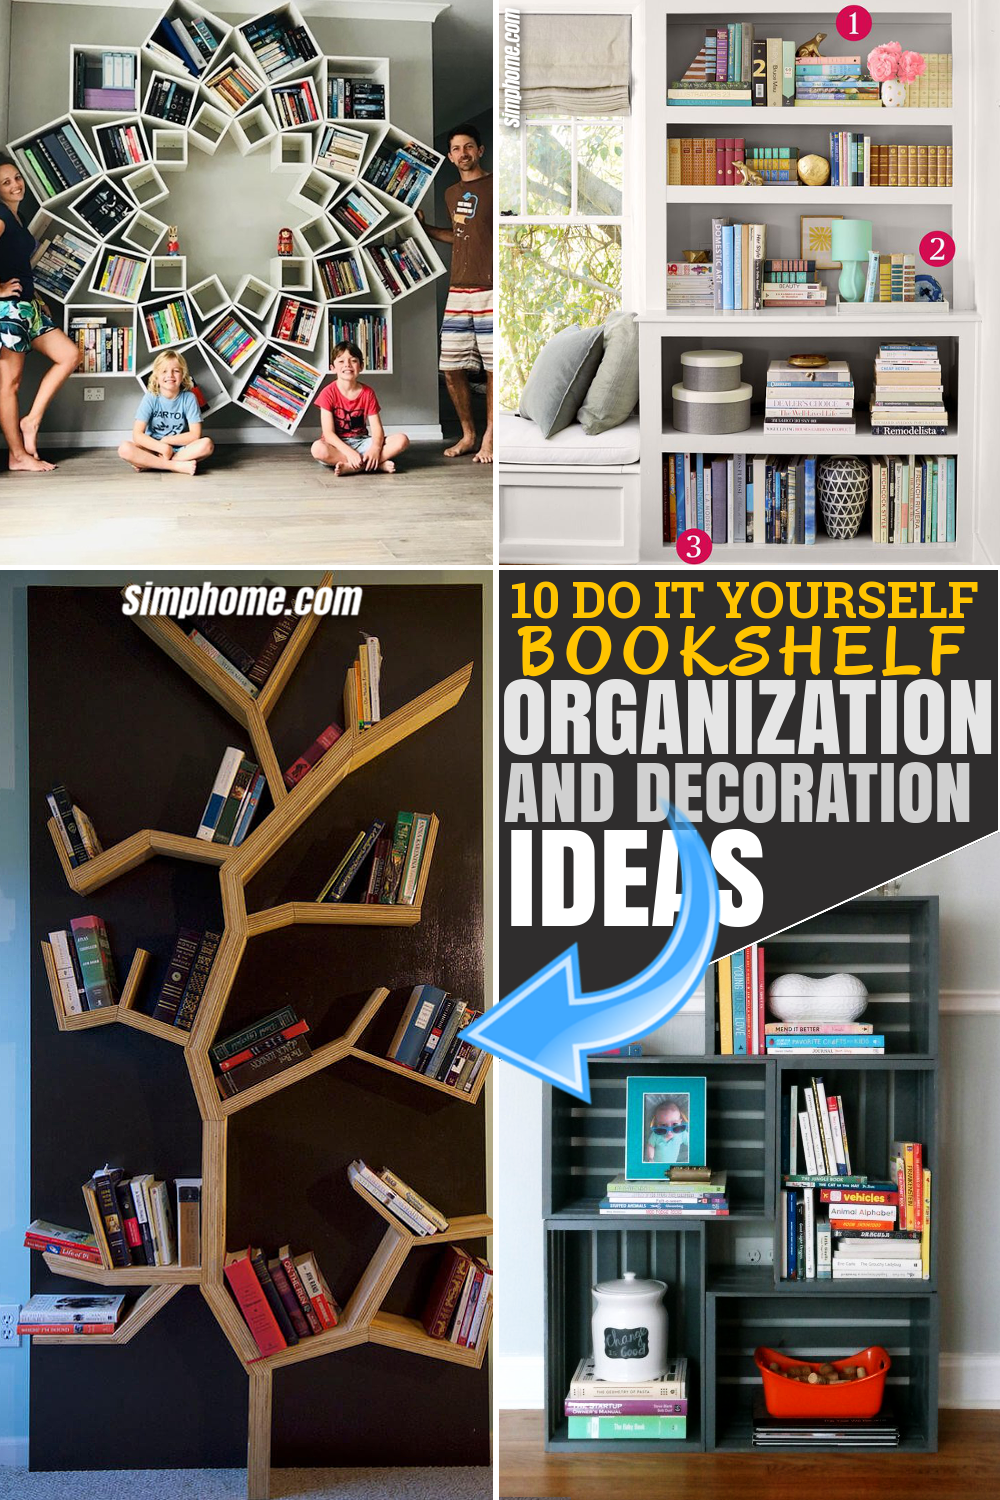 SIMPHOME.COM 10 DIY Bookshelf Organization and Decoration Ideas Pinterest Image